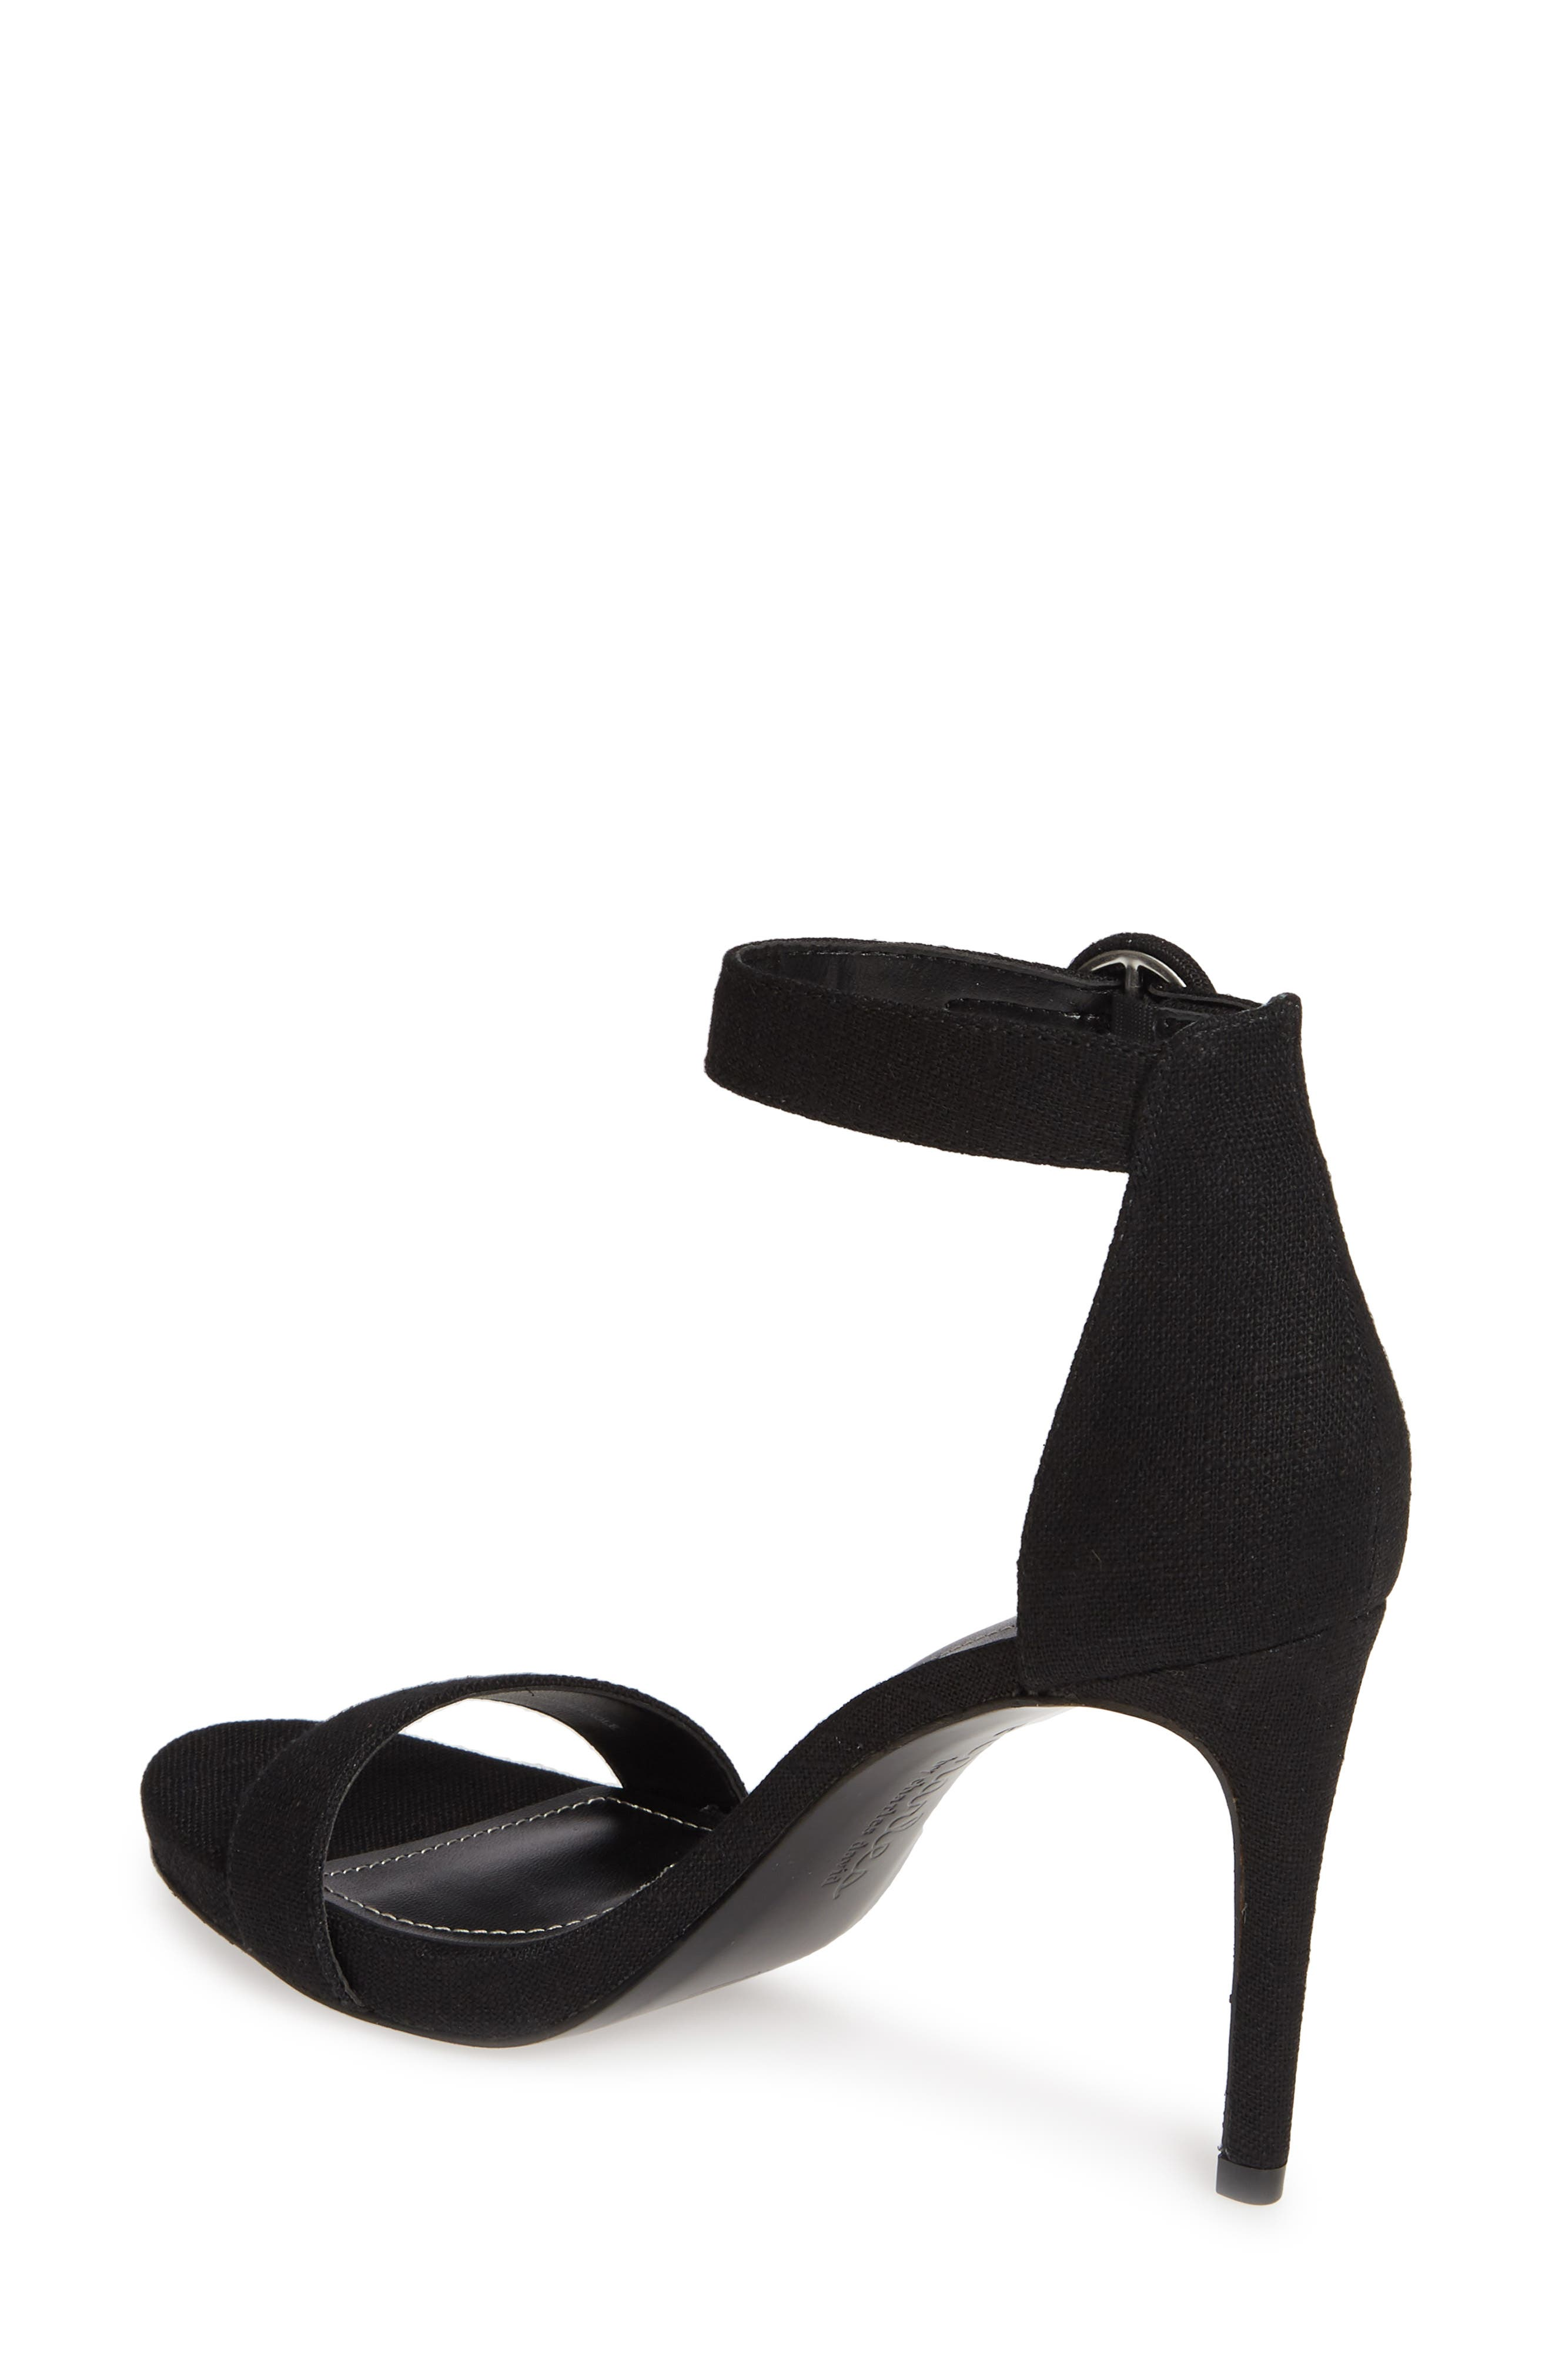 CHARLES BY CHARLES DAVID, Cairo Sandal, Alternate thumbnail 2, color, BLACK FABRIC